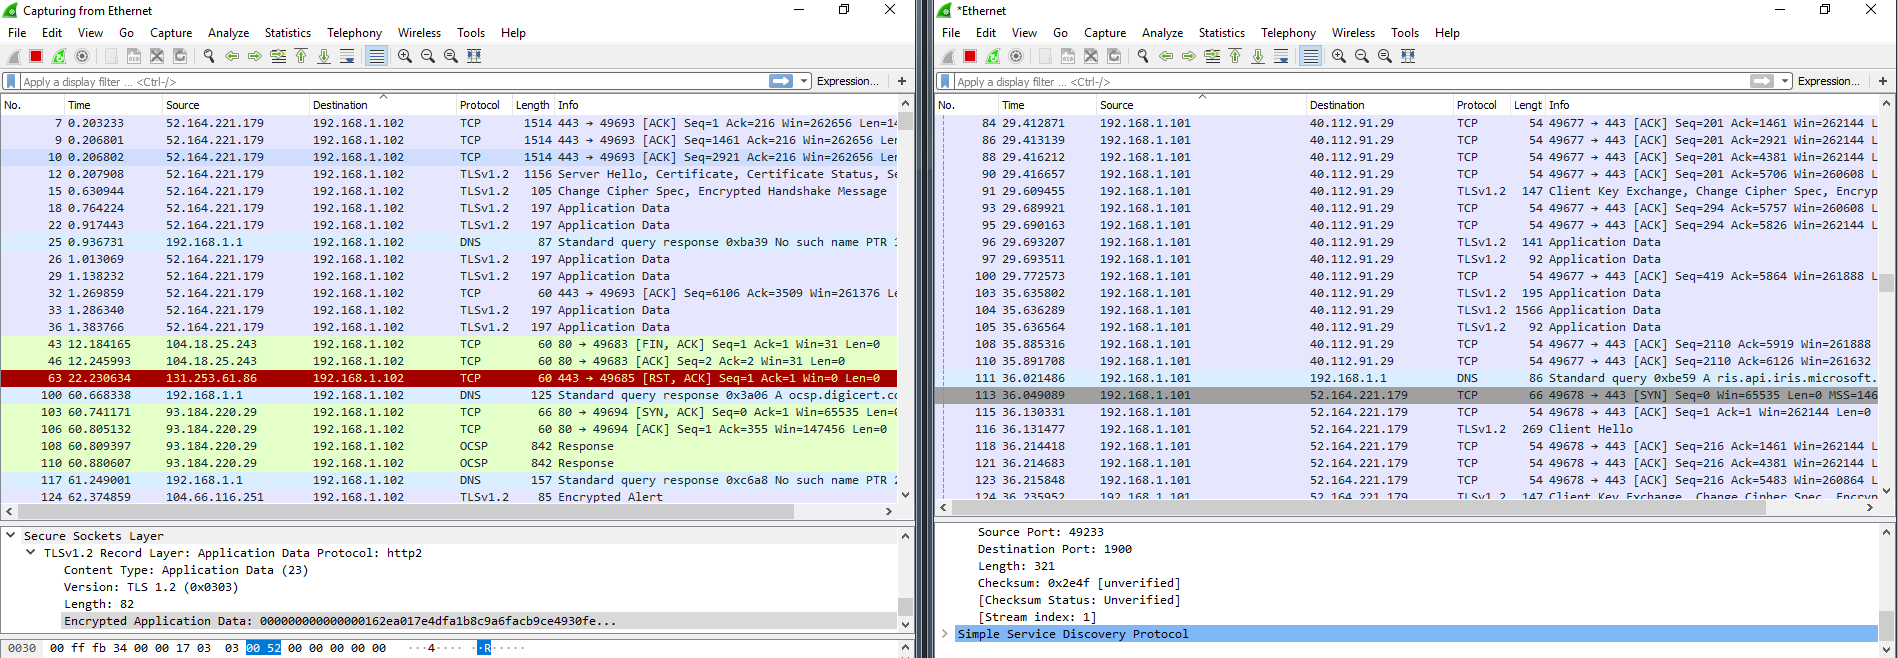 Wireshark dump after the use of DWS